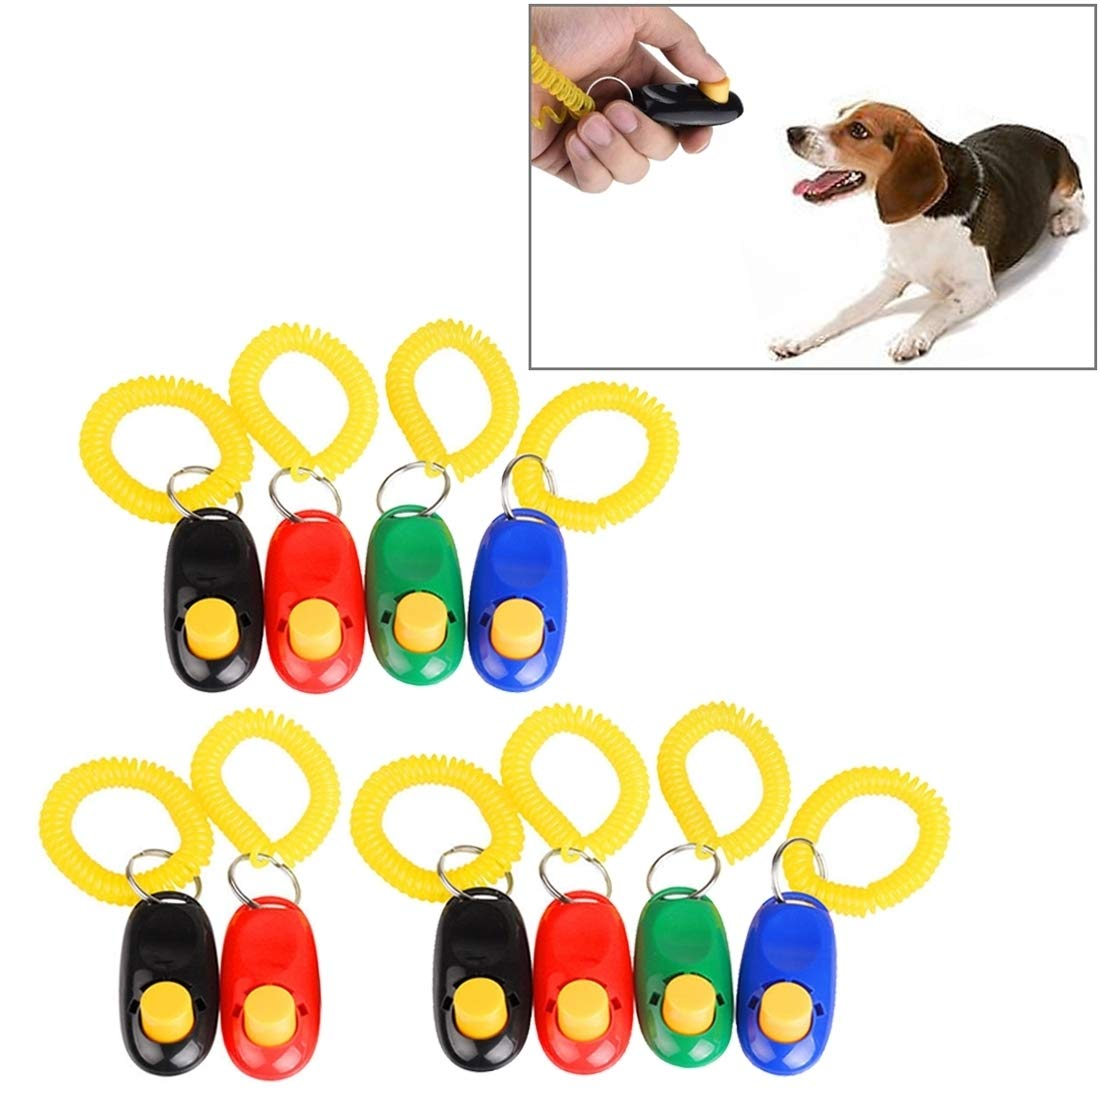 VAXT Random Colour Delivery, 10 PCS Pet Training Clicker Button Dog Training Whistle with Key Chain & Spring Chain